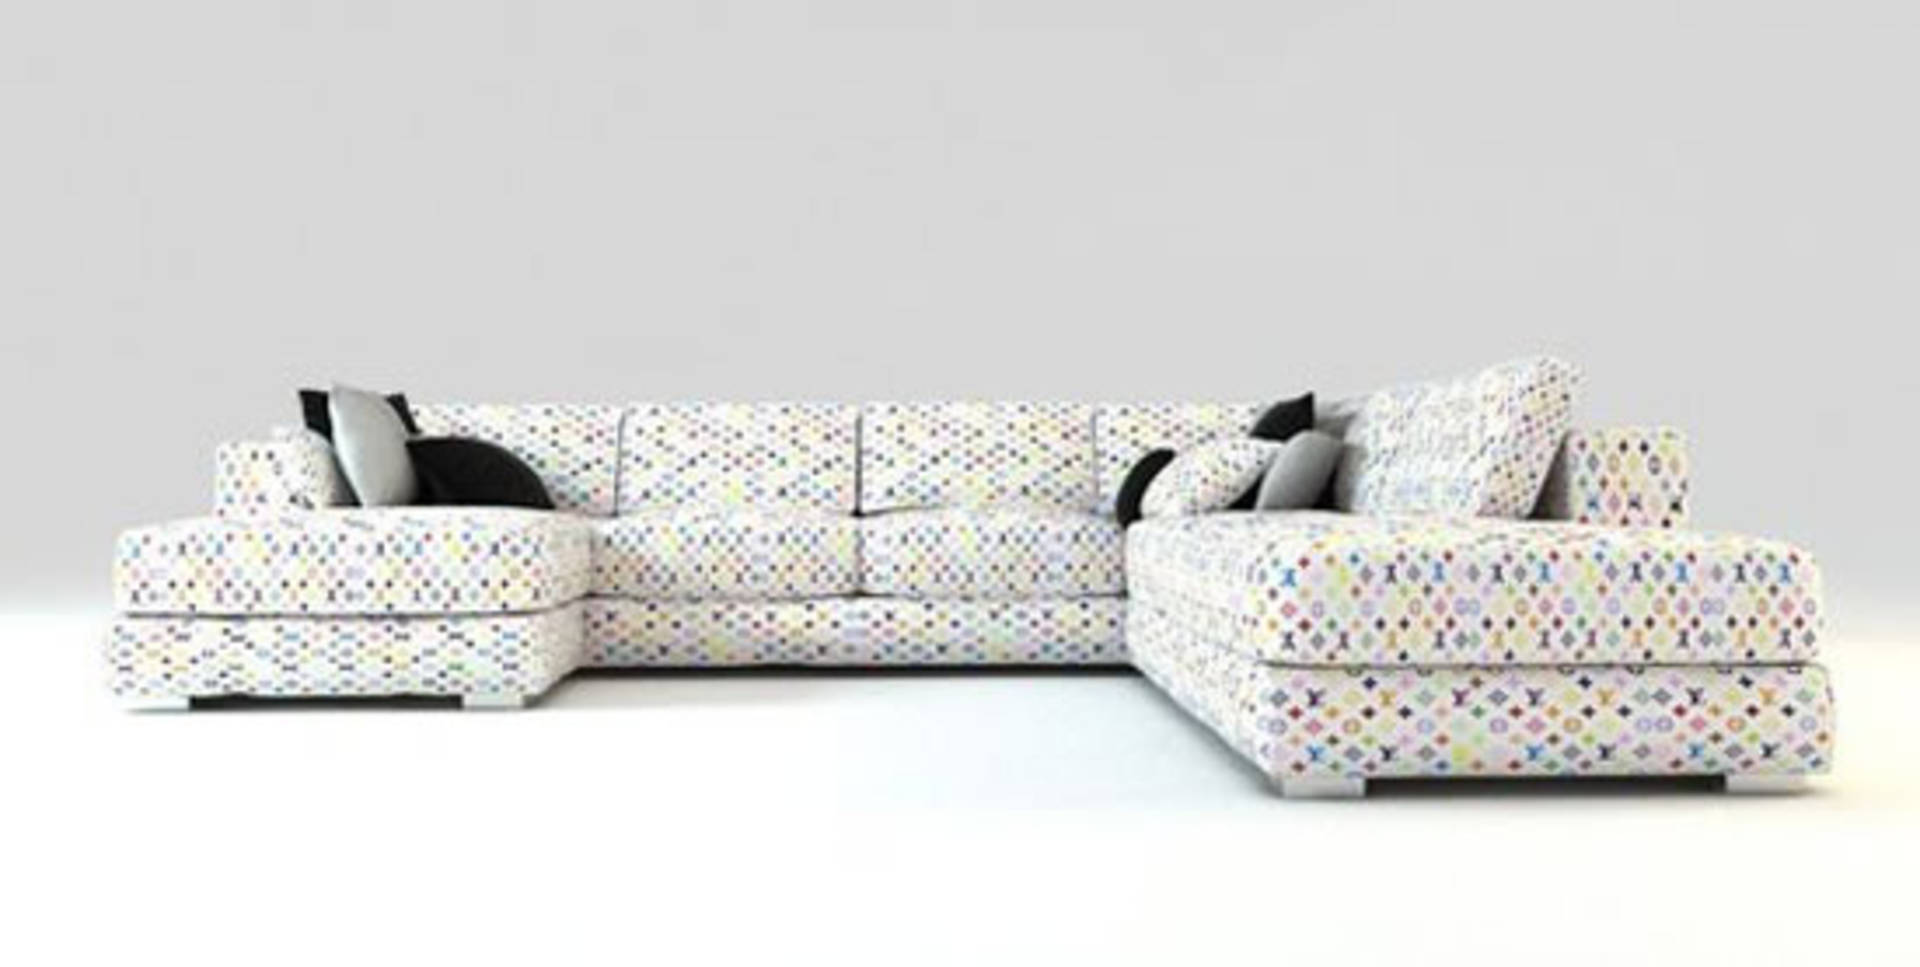 Surprising Luxury And Glamour Louis Vuitton Sofas By Jason Phillips Creativecarmelina Interior Chair Design Creativecarmelinacom